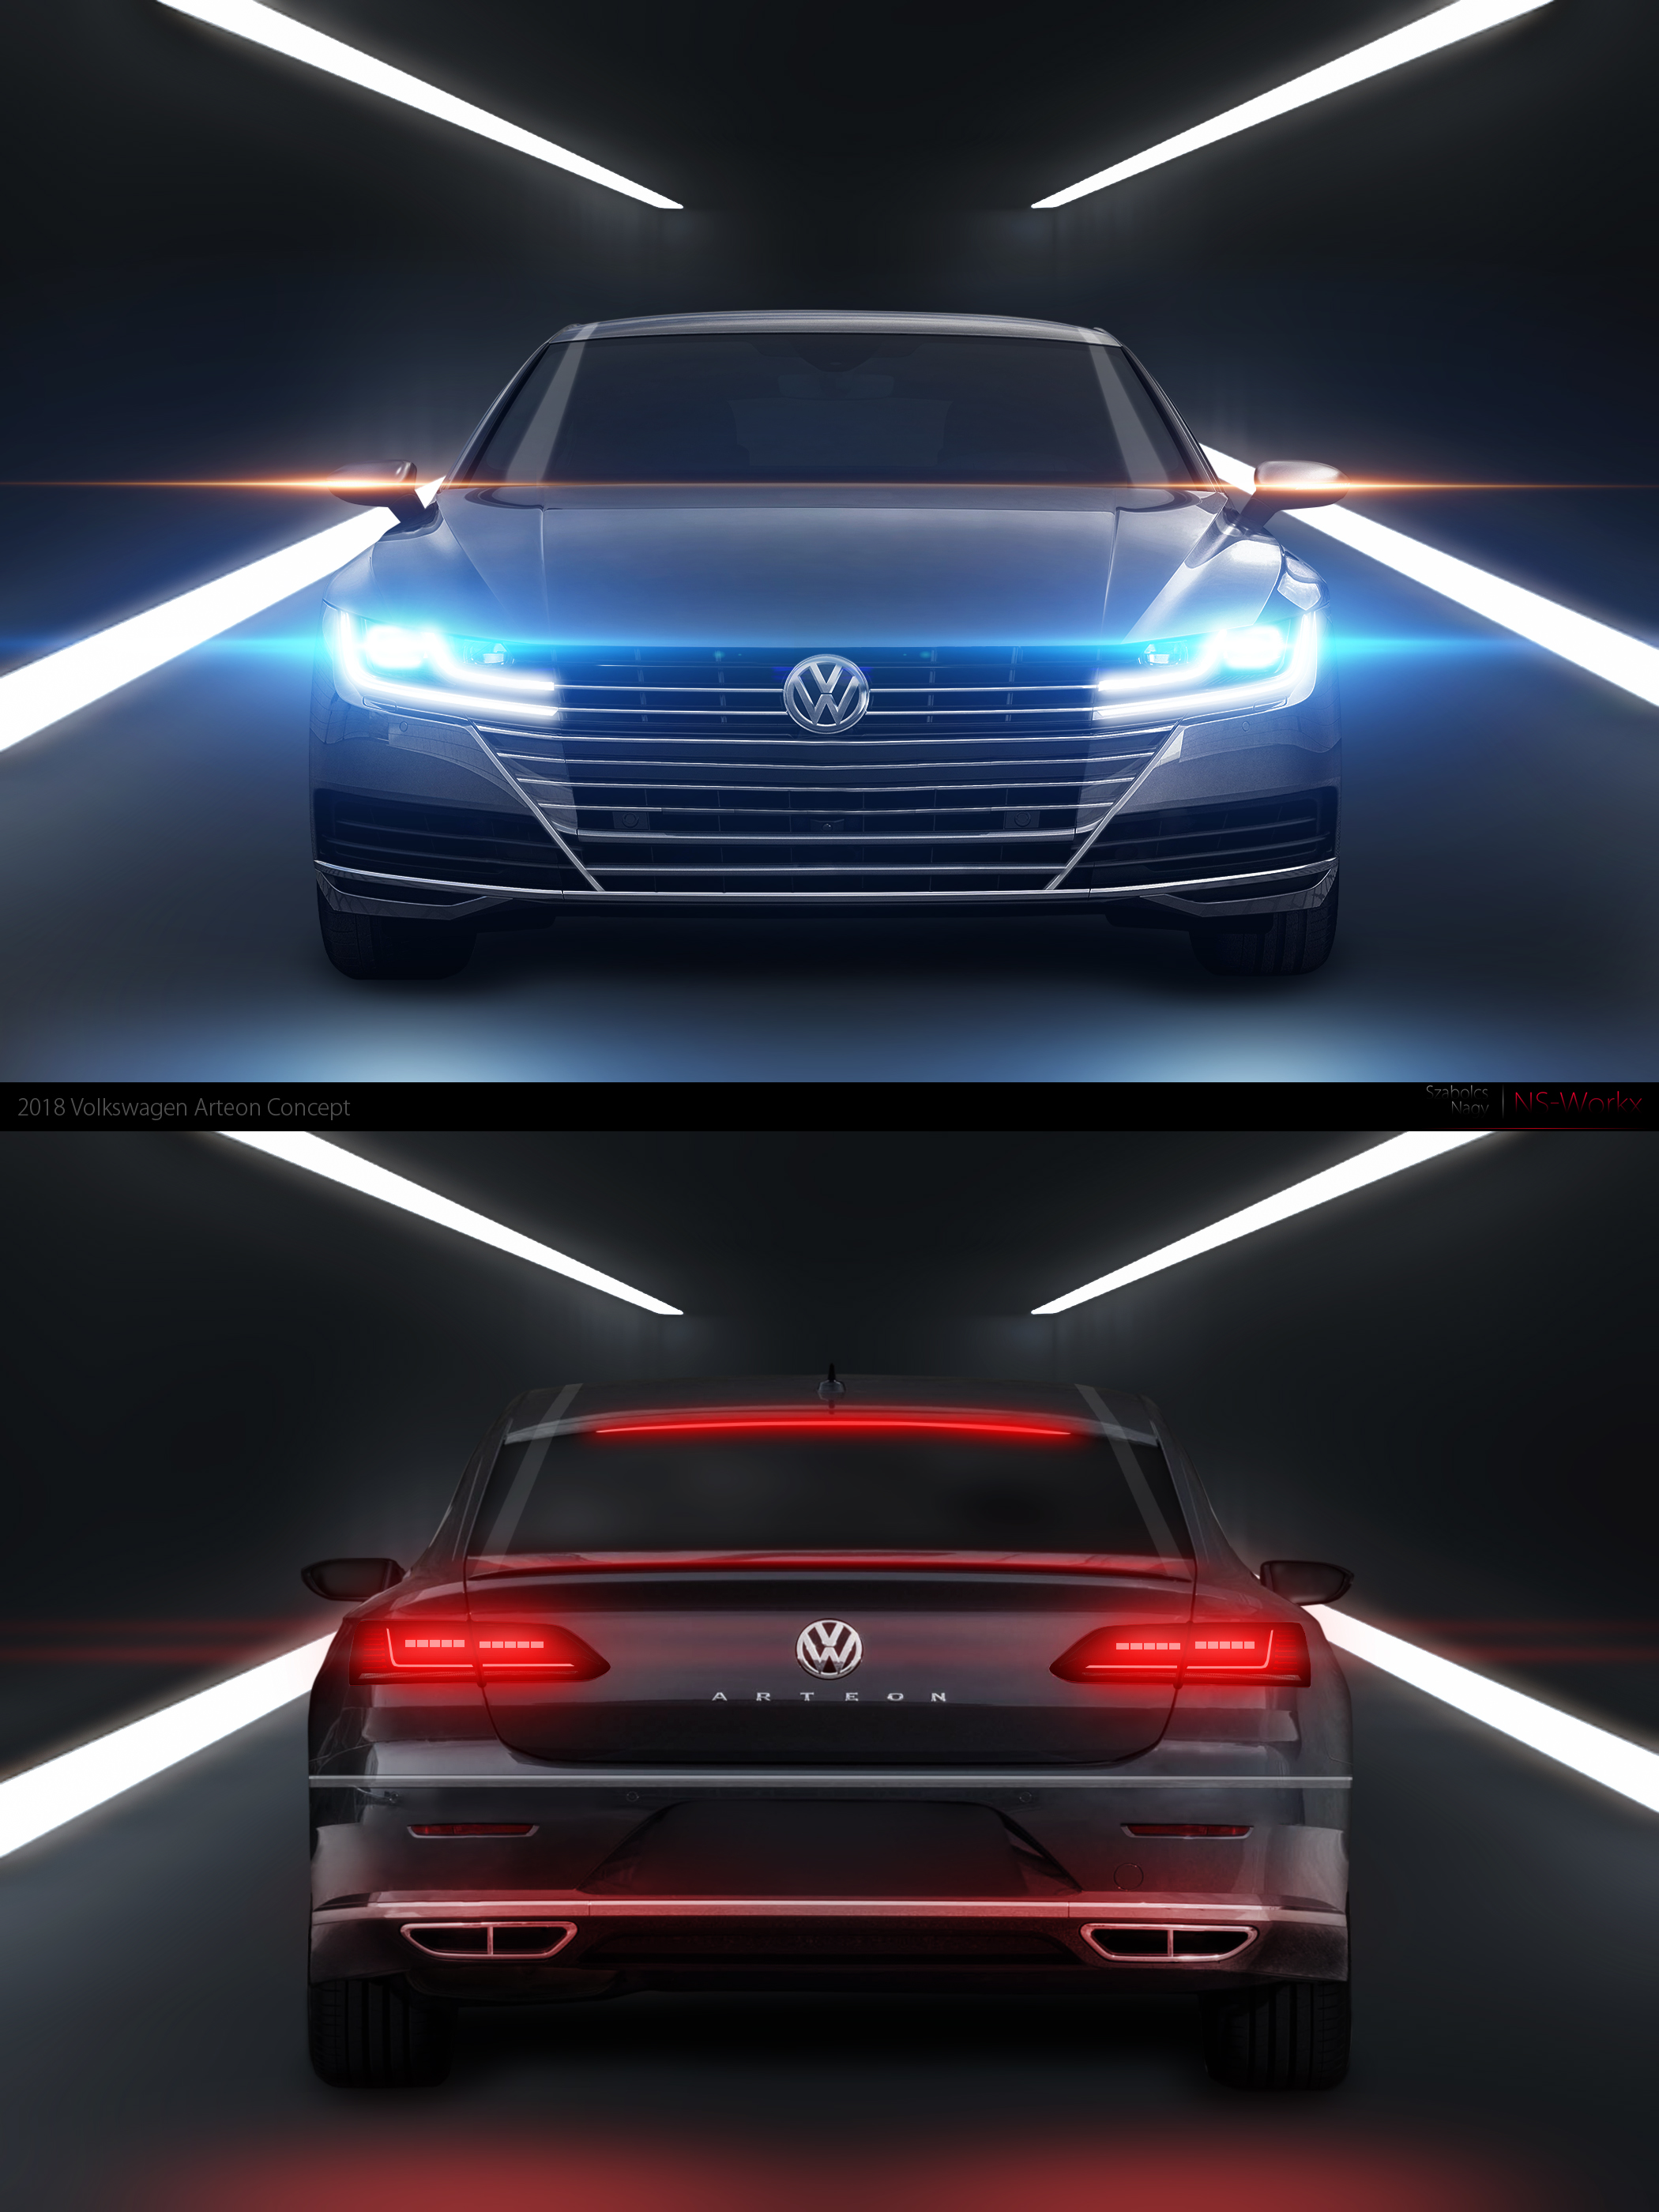 2018 Volkswagen Arteon Concept by specialized666